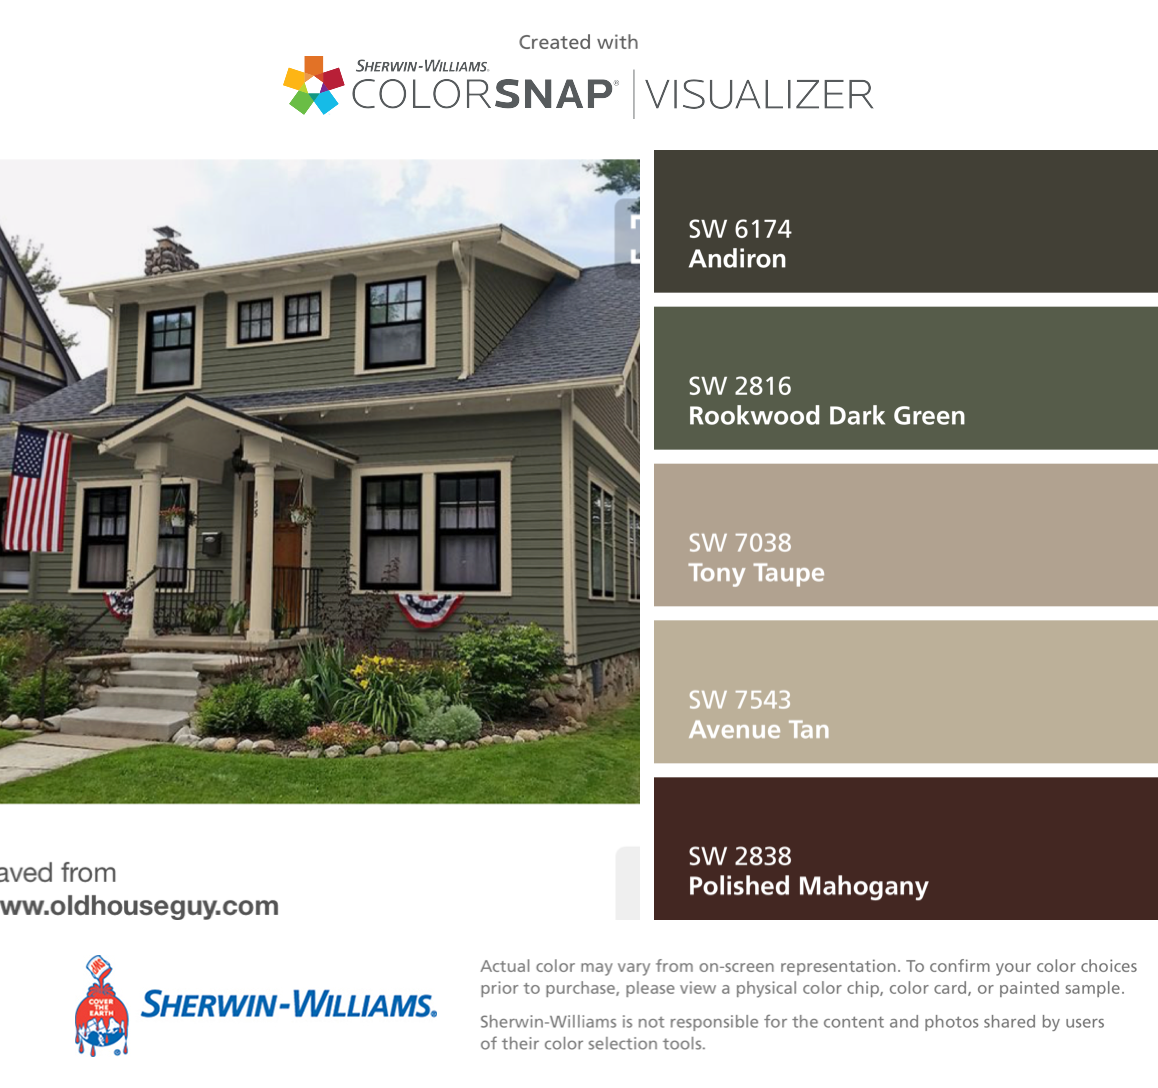 Taupe Exterior House Color Ideas: Found These Colors With Colorsnap Visualizer For Iphone